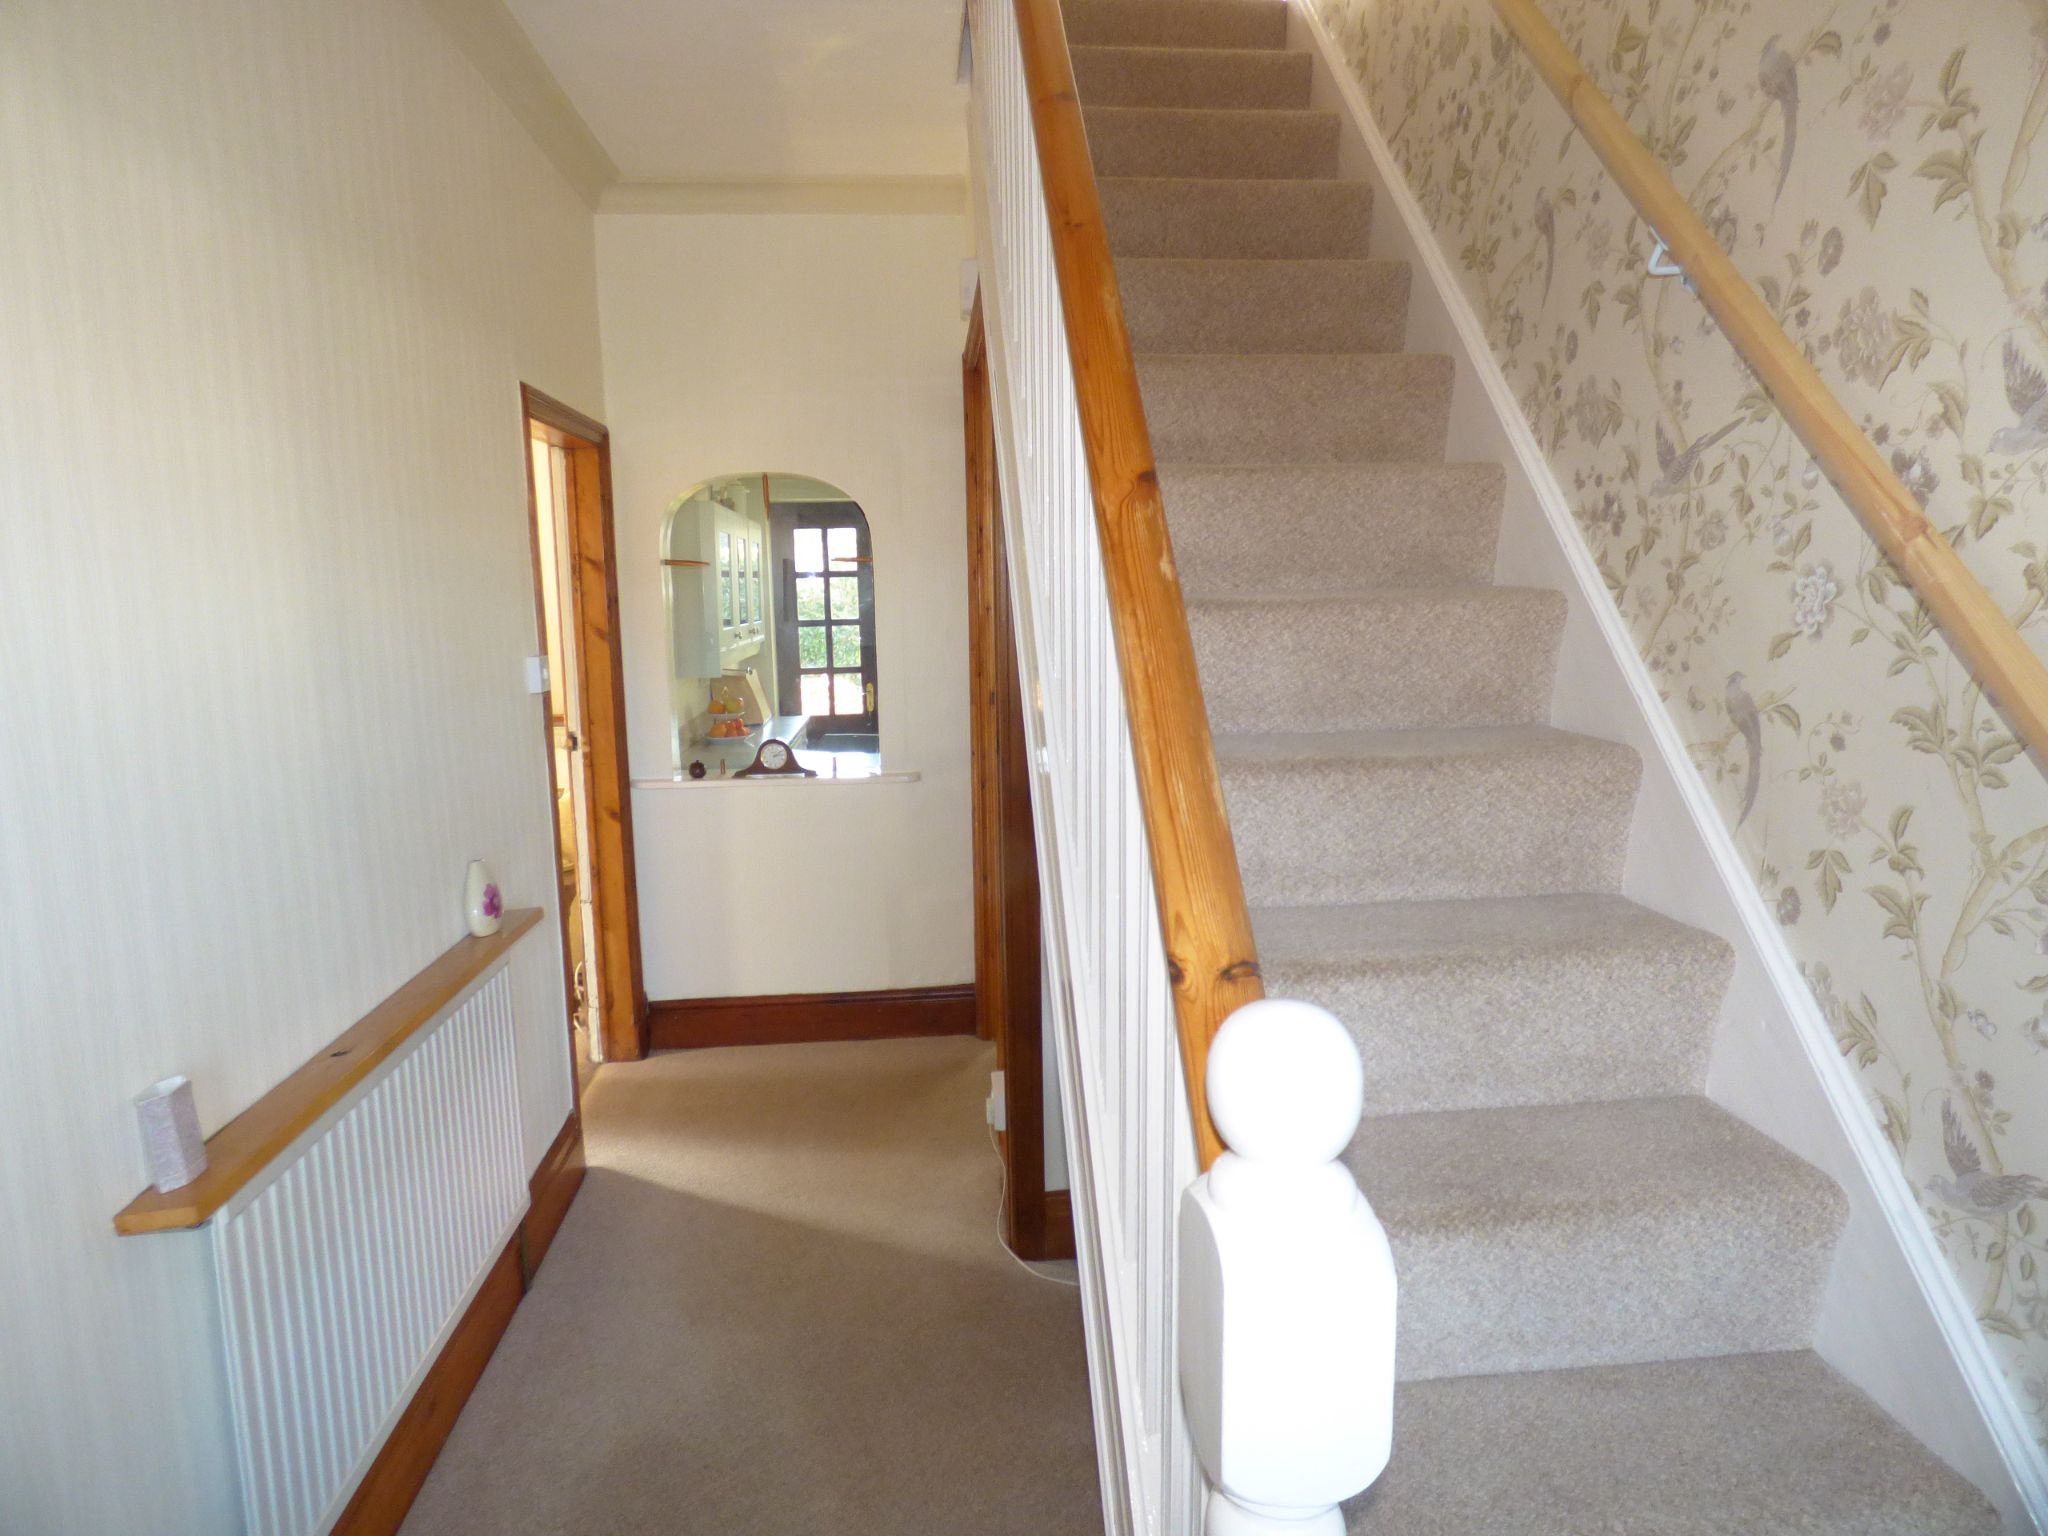 3 Bedroom Detached House For Sale - Hallway